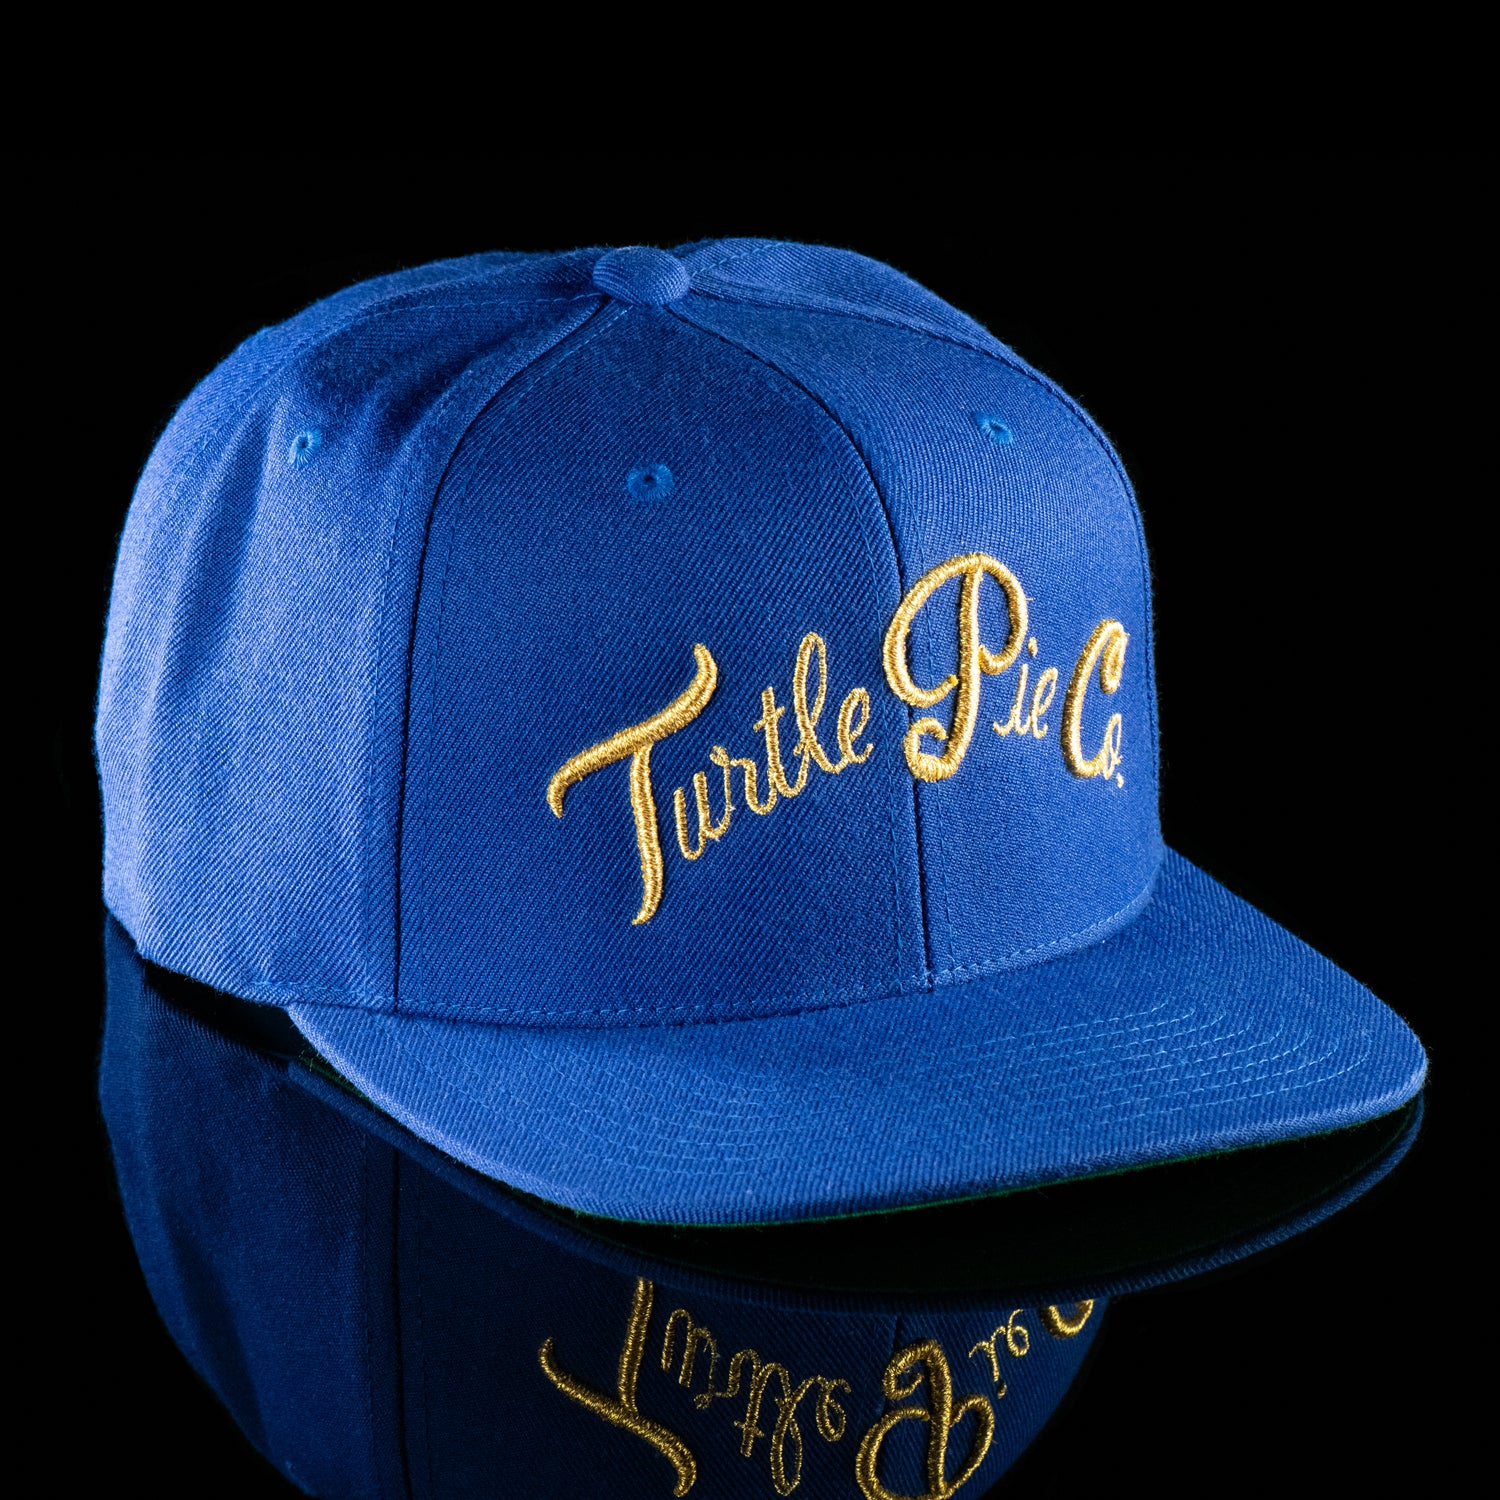 Turtle Pie Co Snapback Hat - Yellow On Dodger Blue